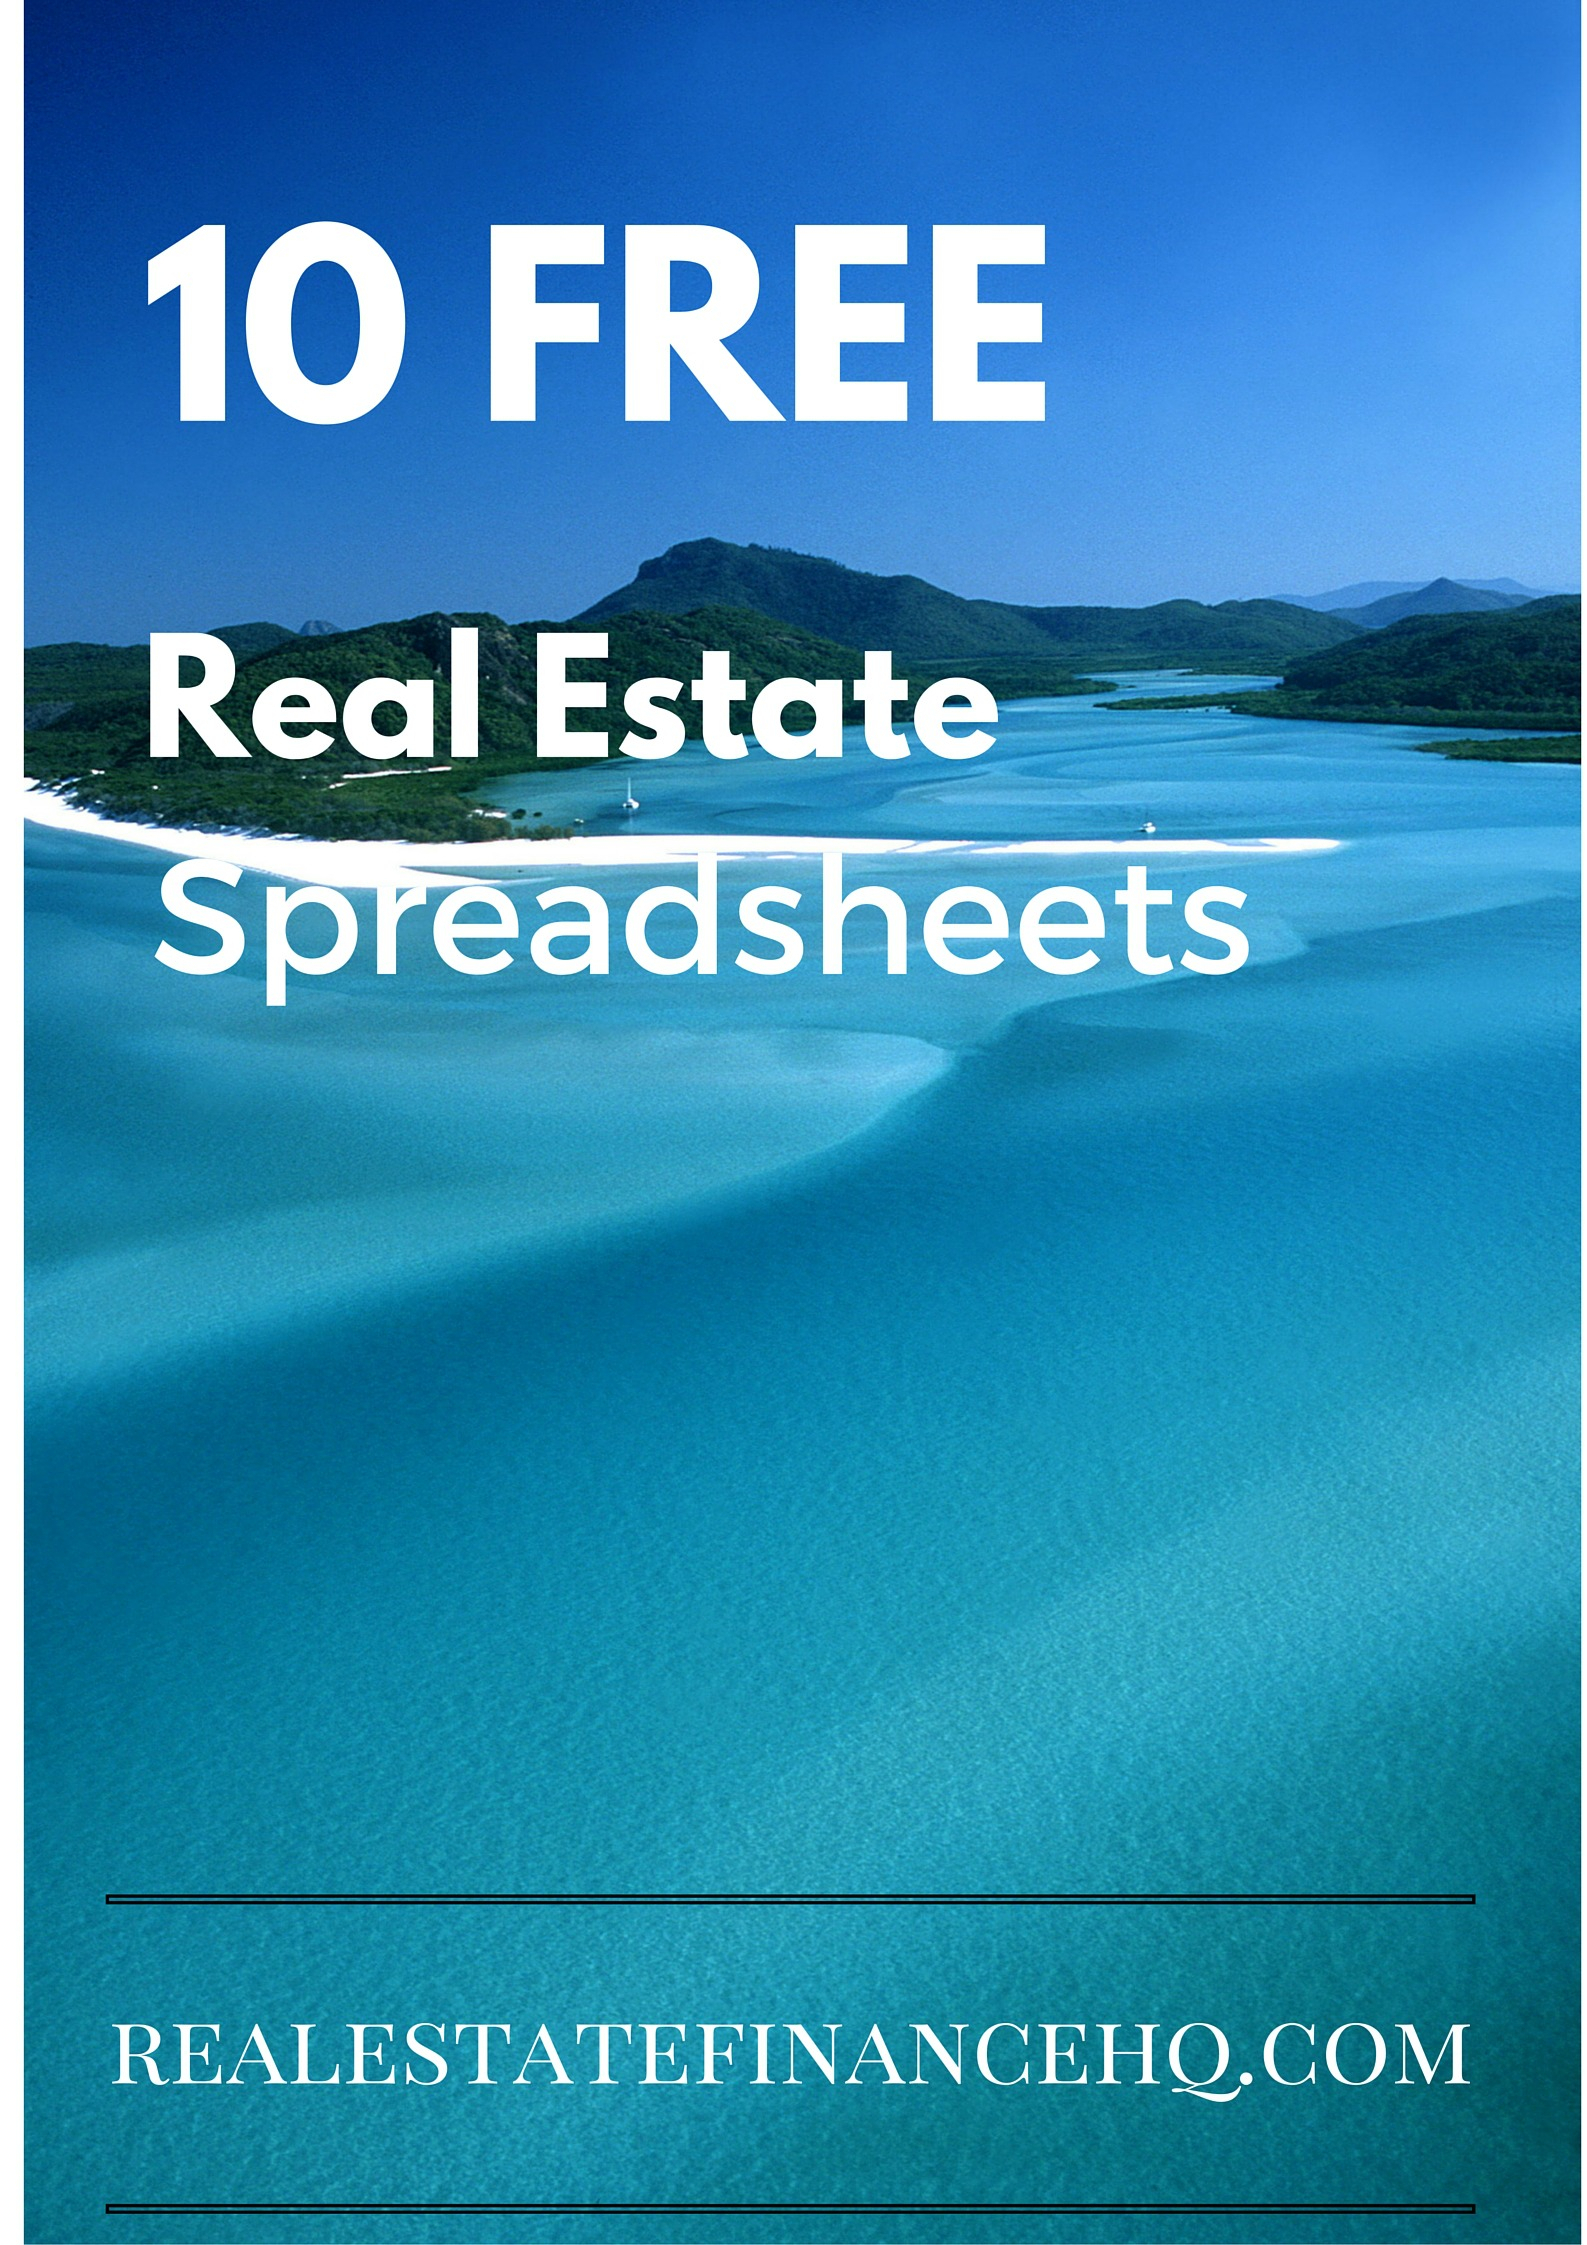 Spreadsheet For Real Estate Investment With Regard To 10 Free Real Estate Spreadsheets  Real Estate Finance